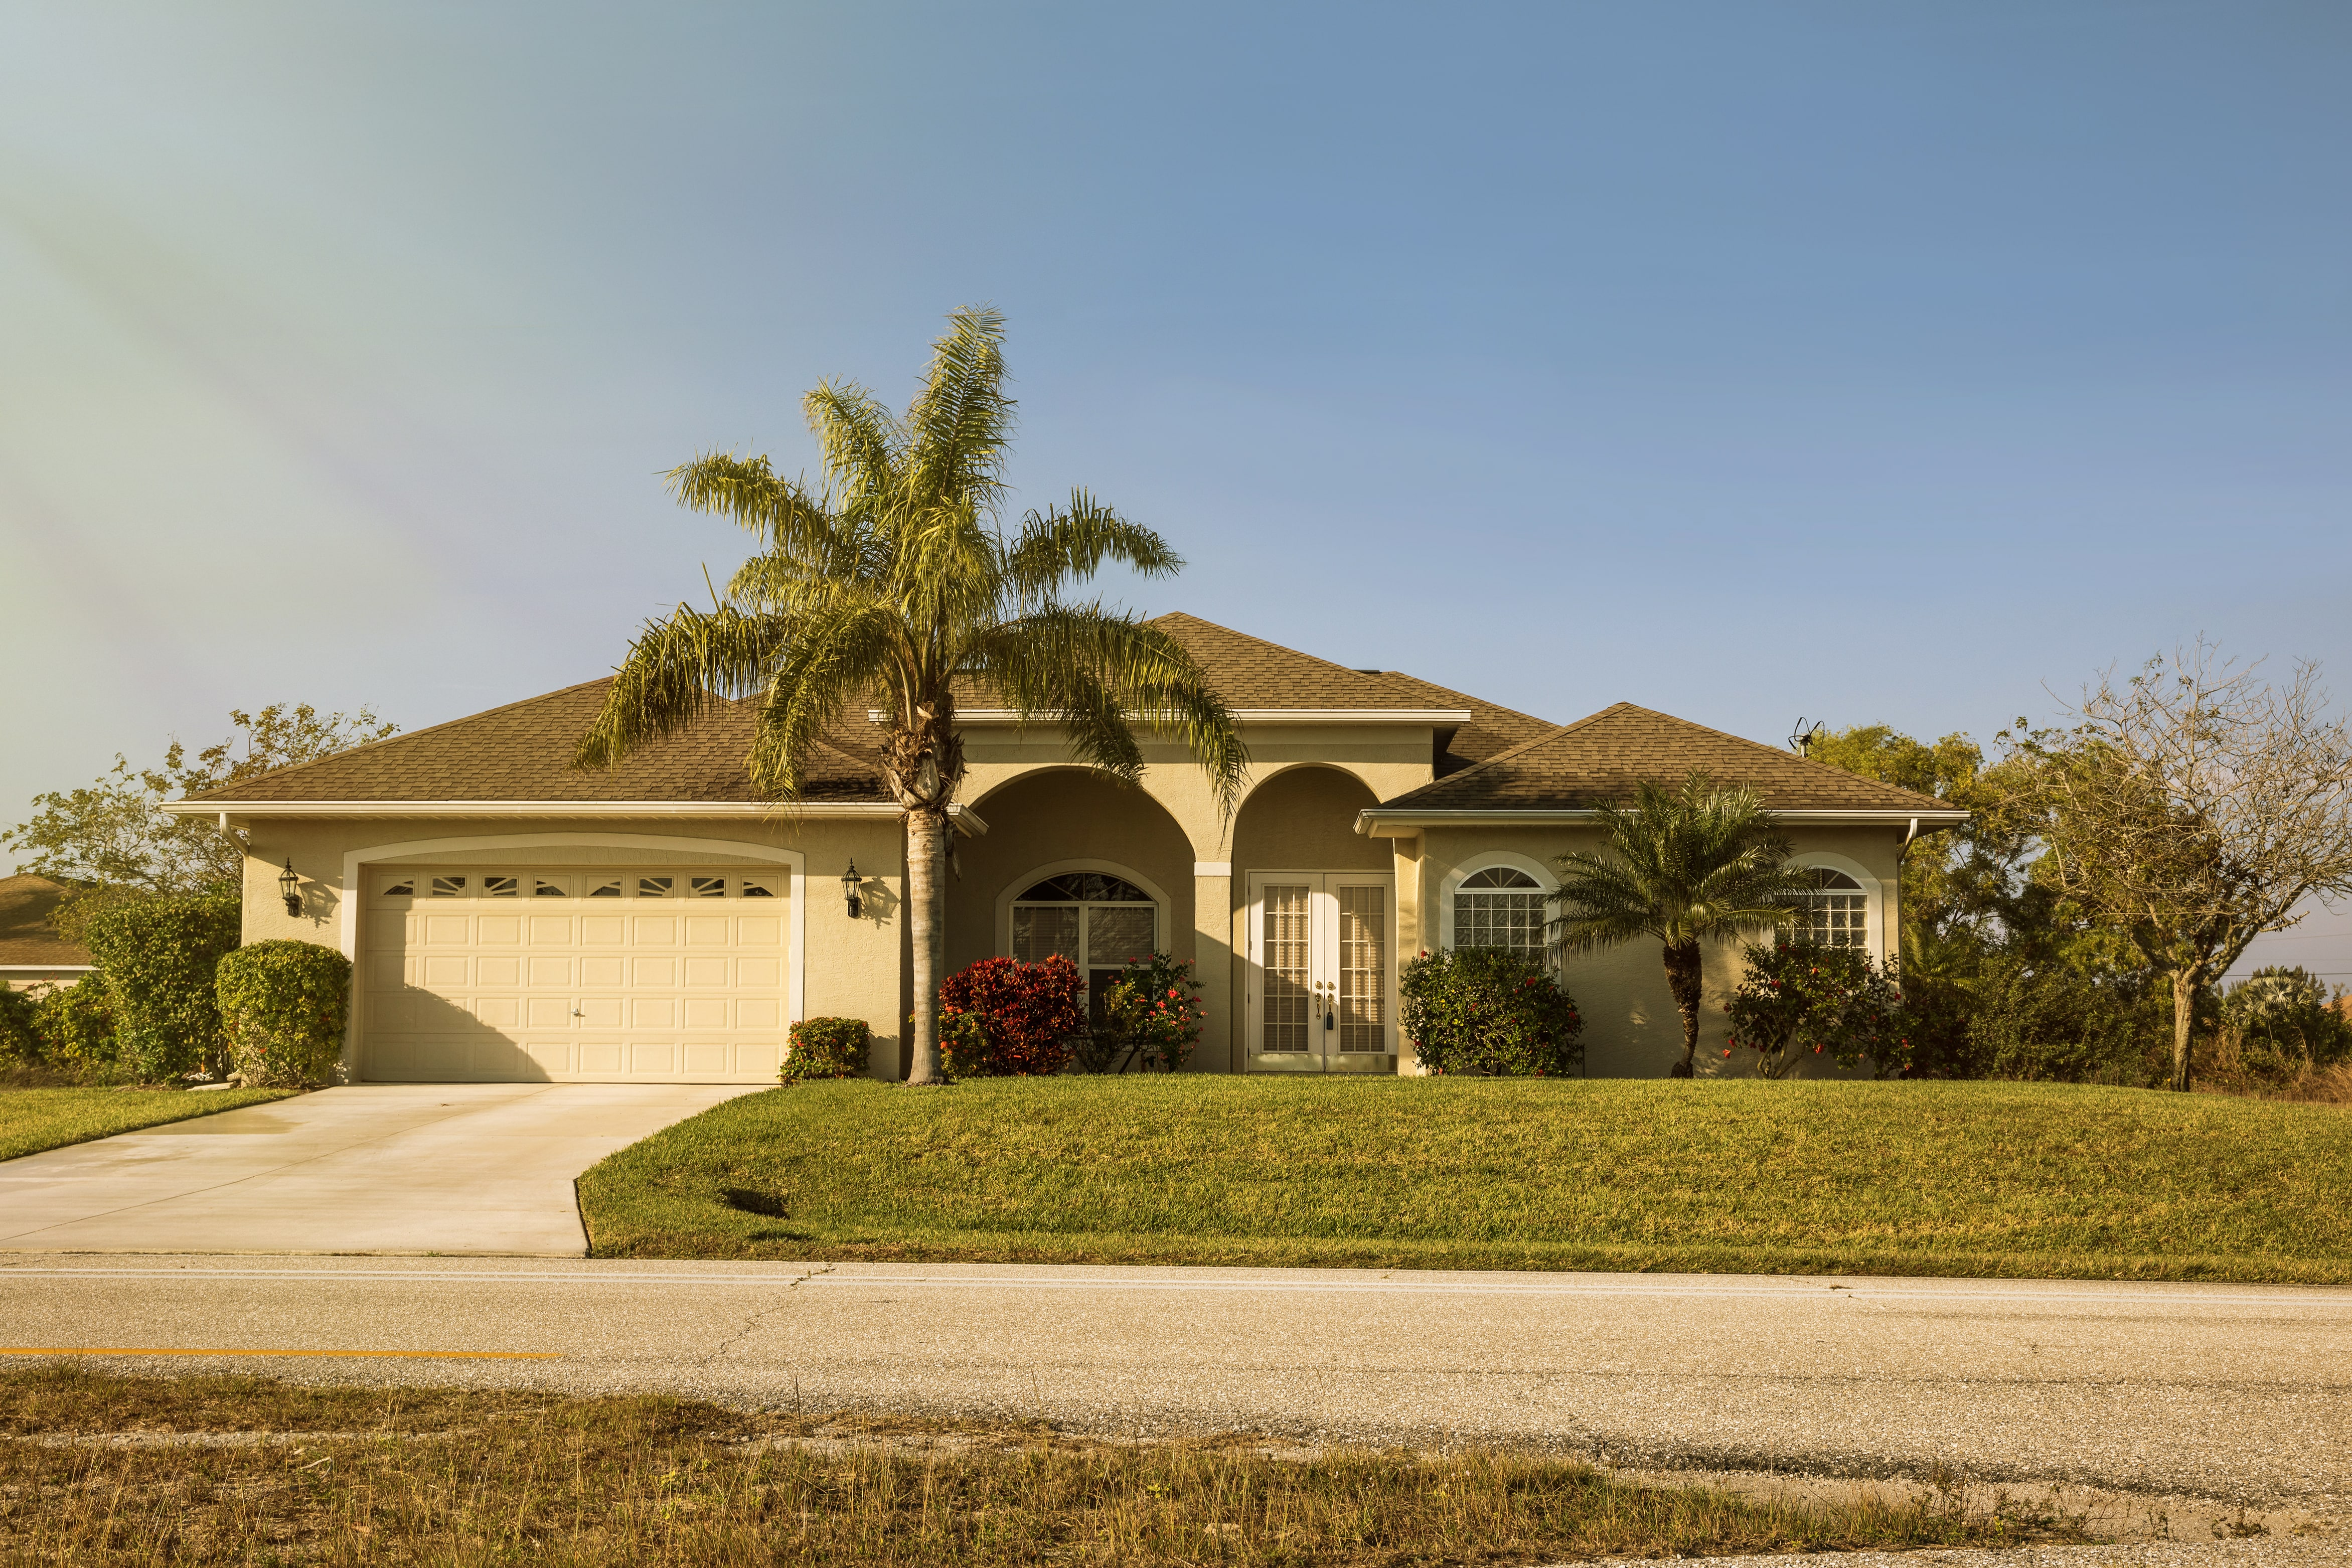 A light yellow house with a large green lawn and palm tree, near where homeowners can find Deltona property management